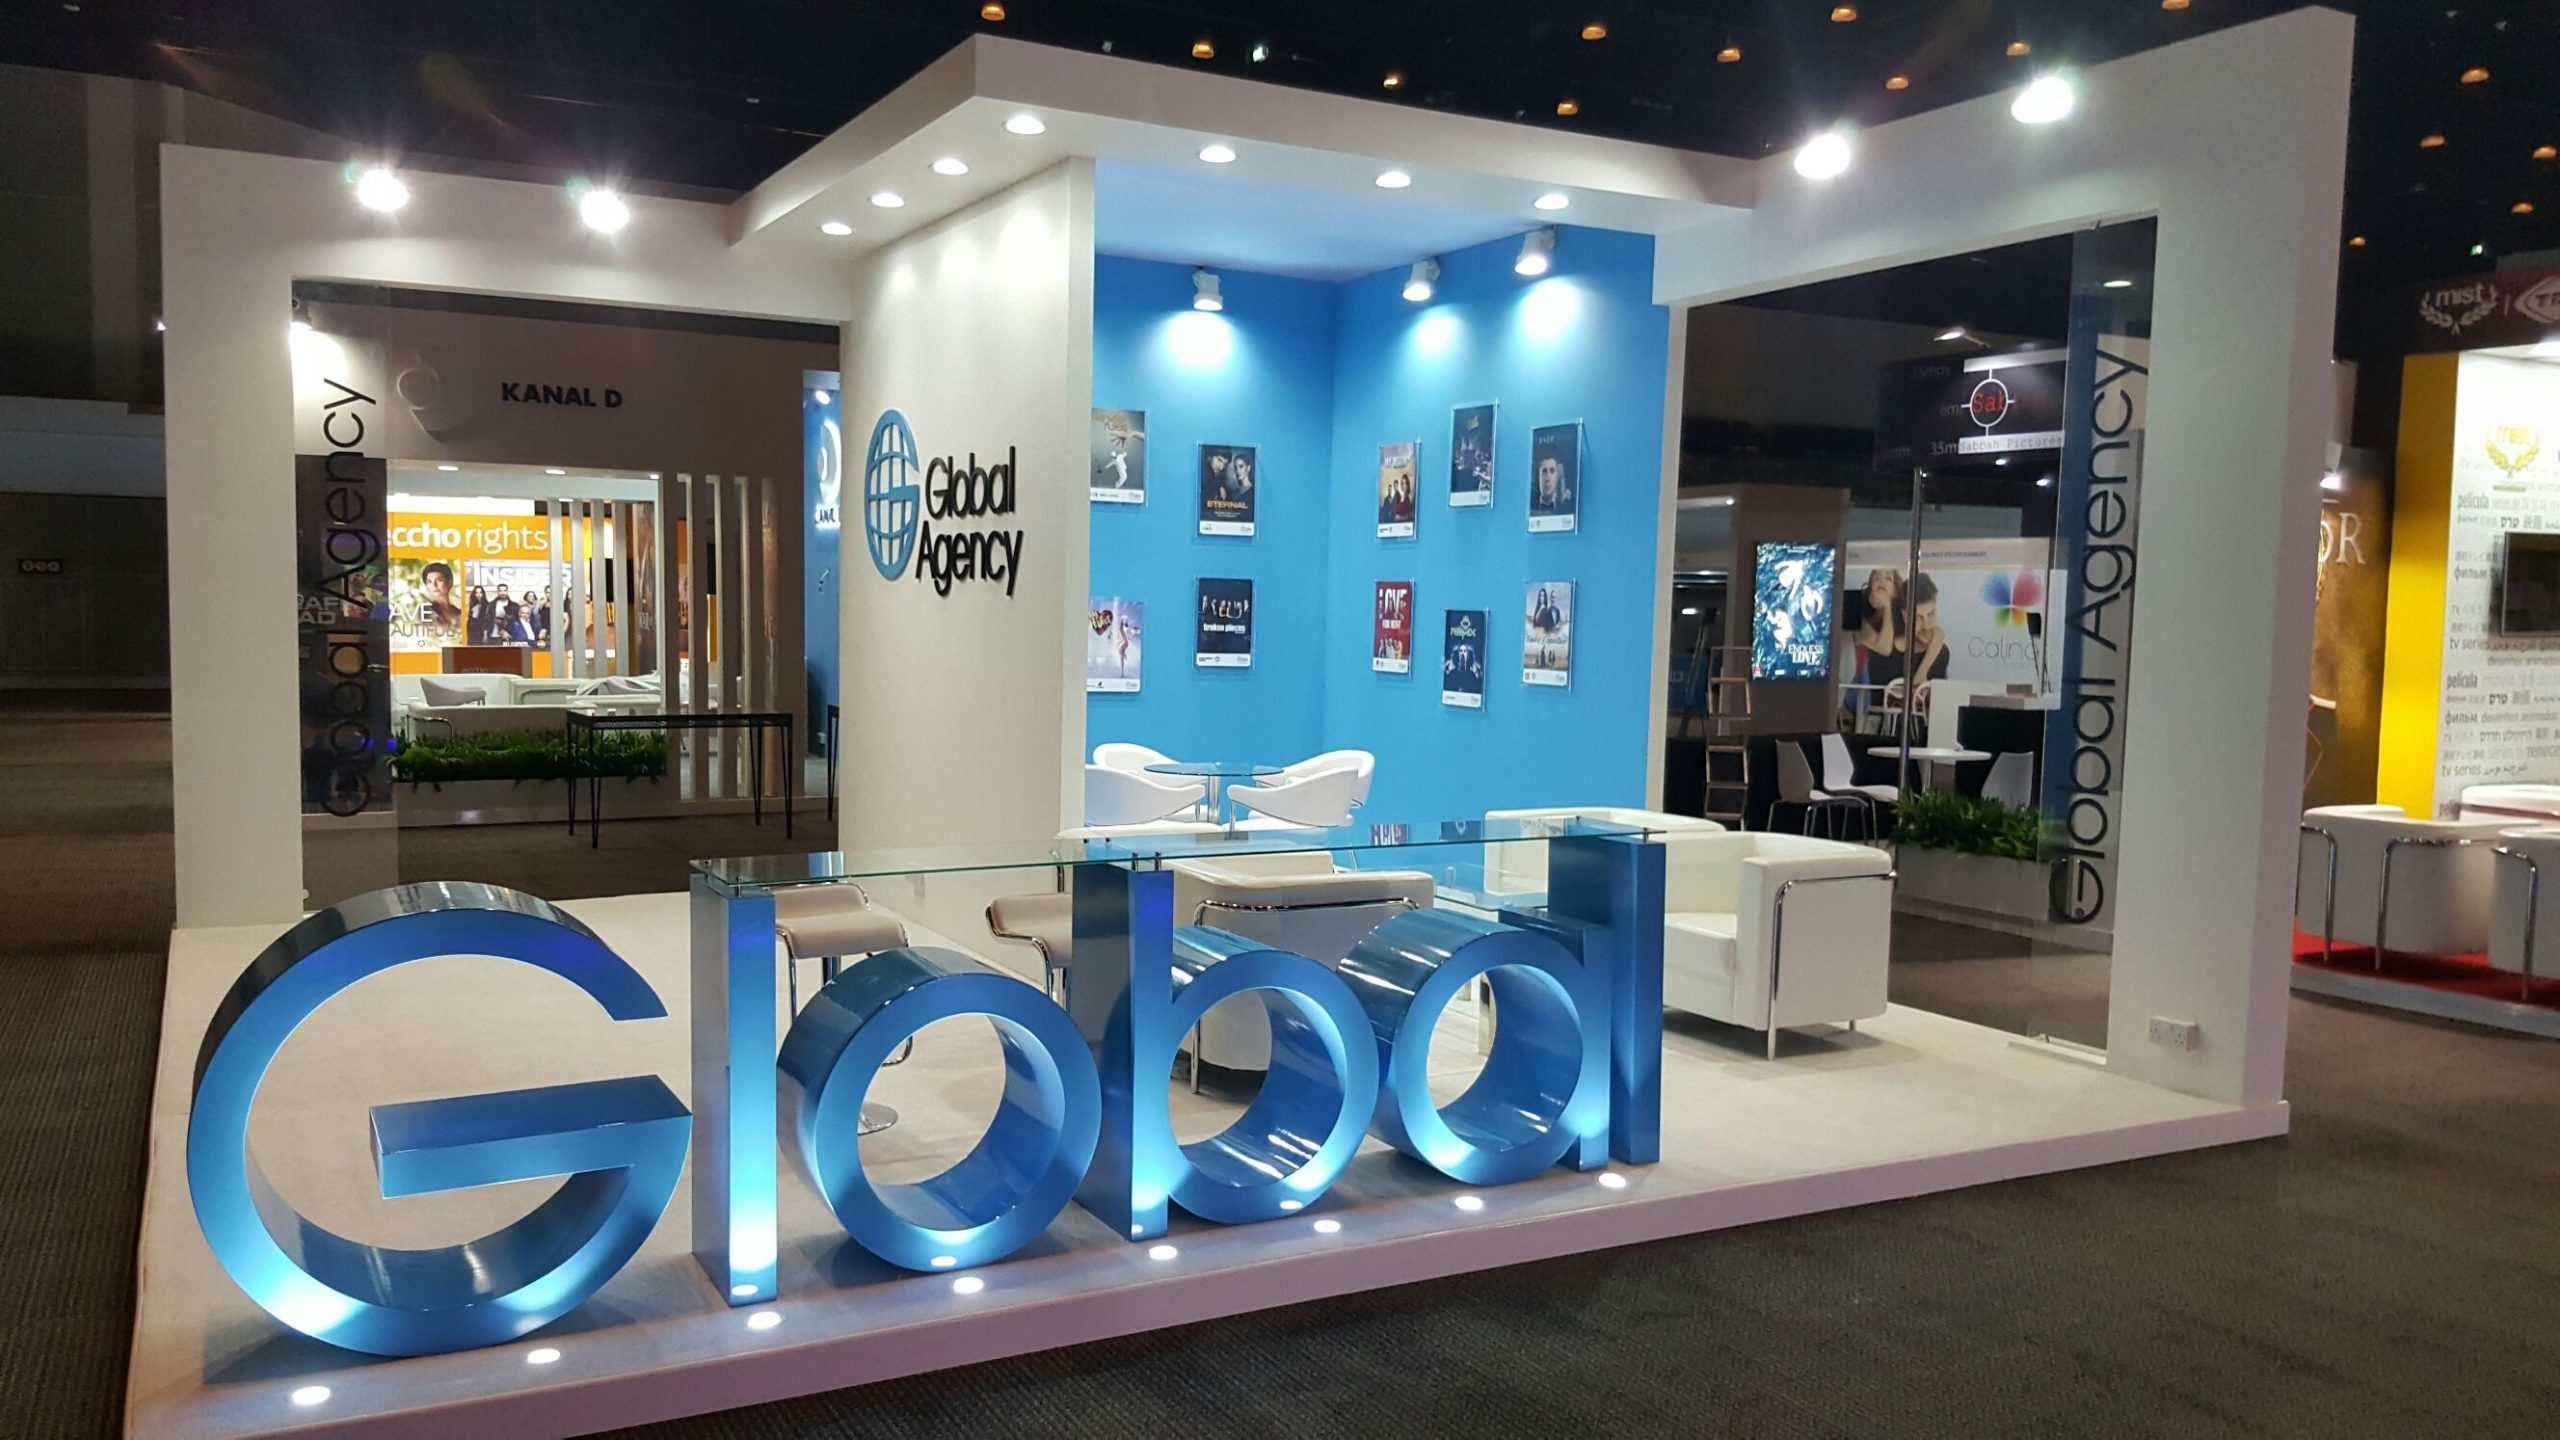 Benefits of hiring exhibition stand companies